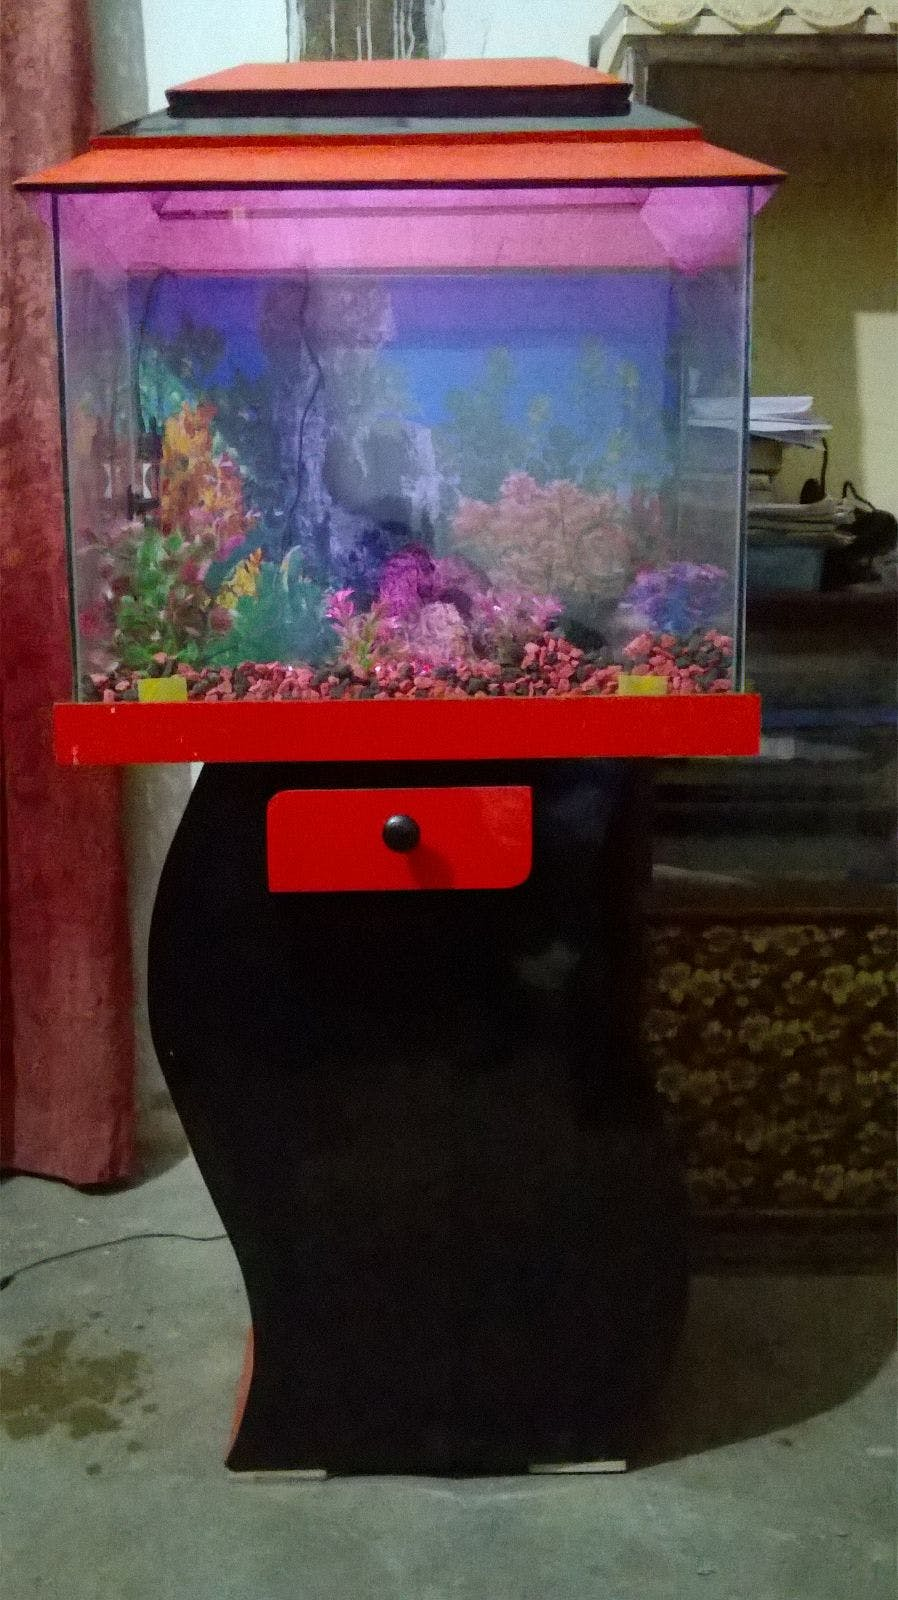 Fig 3: Aquarium used in the Project